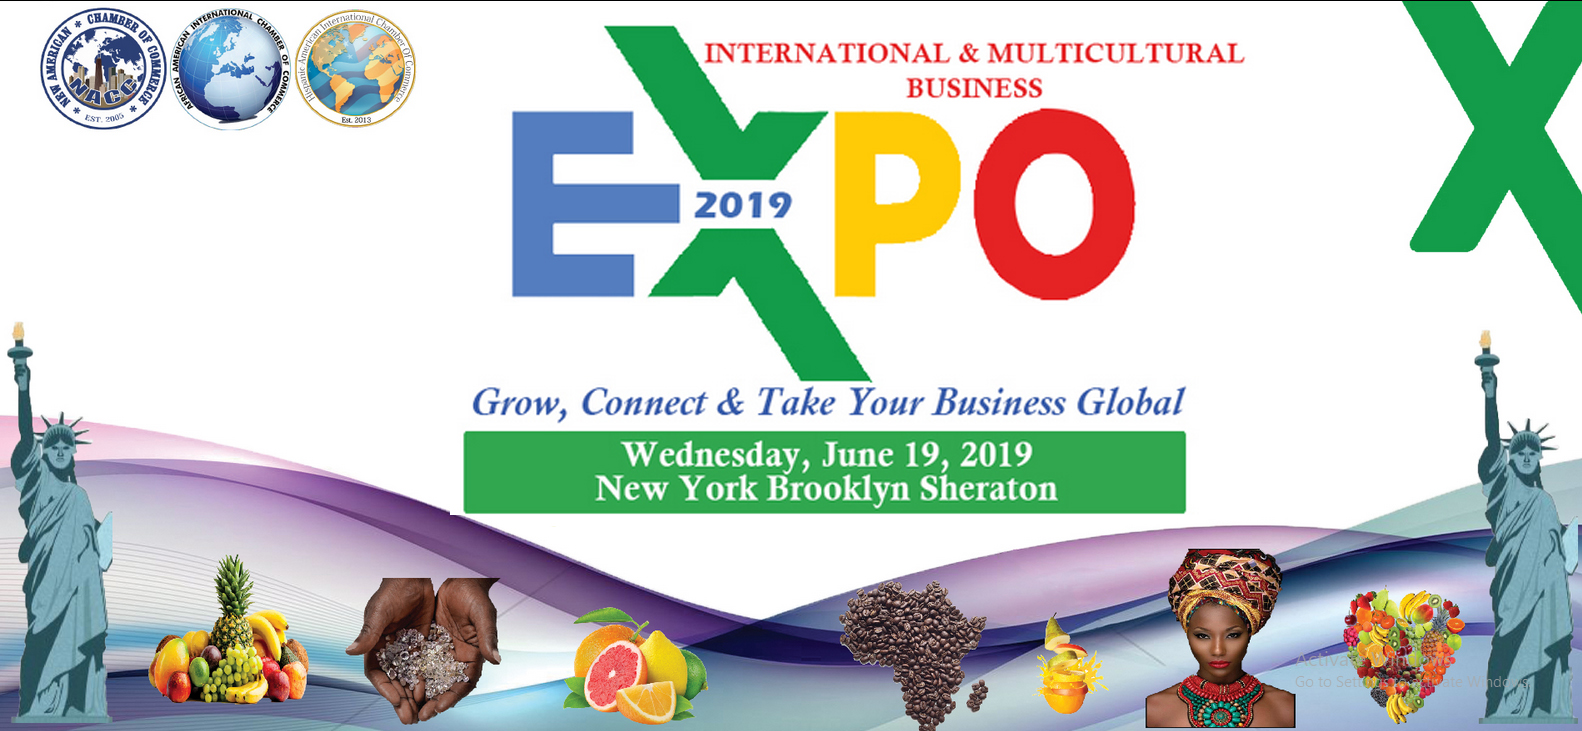 Int. & Multicultural Business Expo 2019